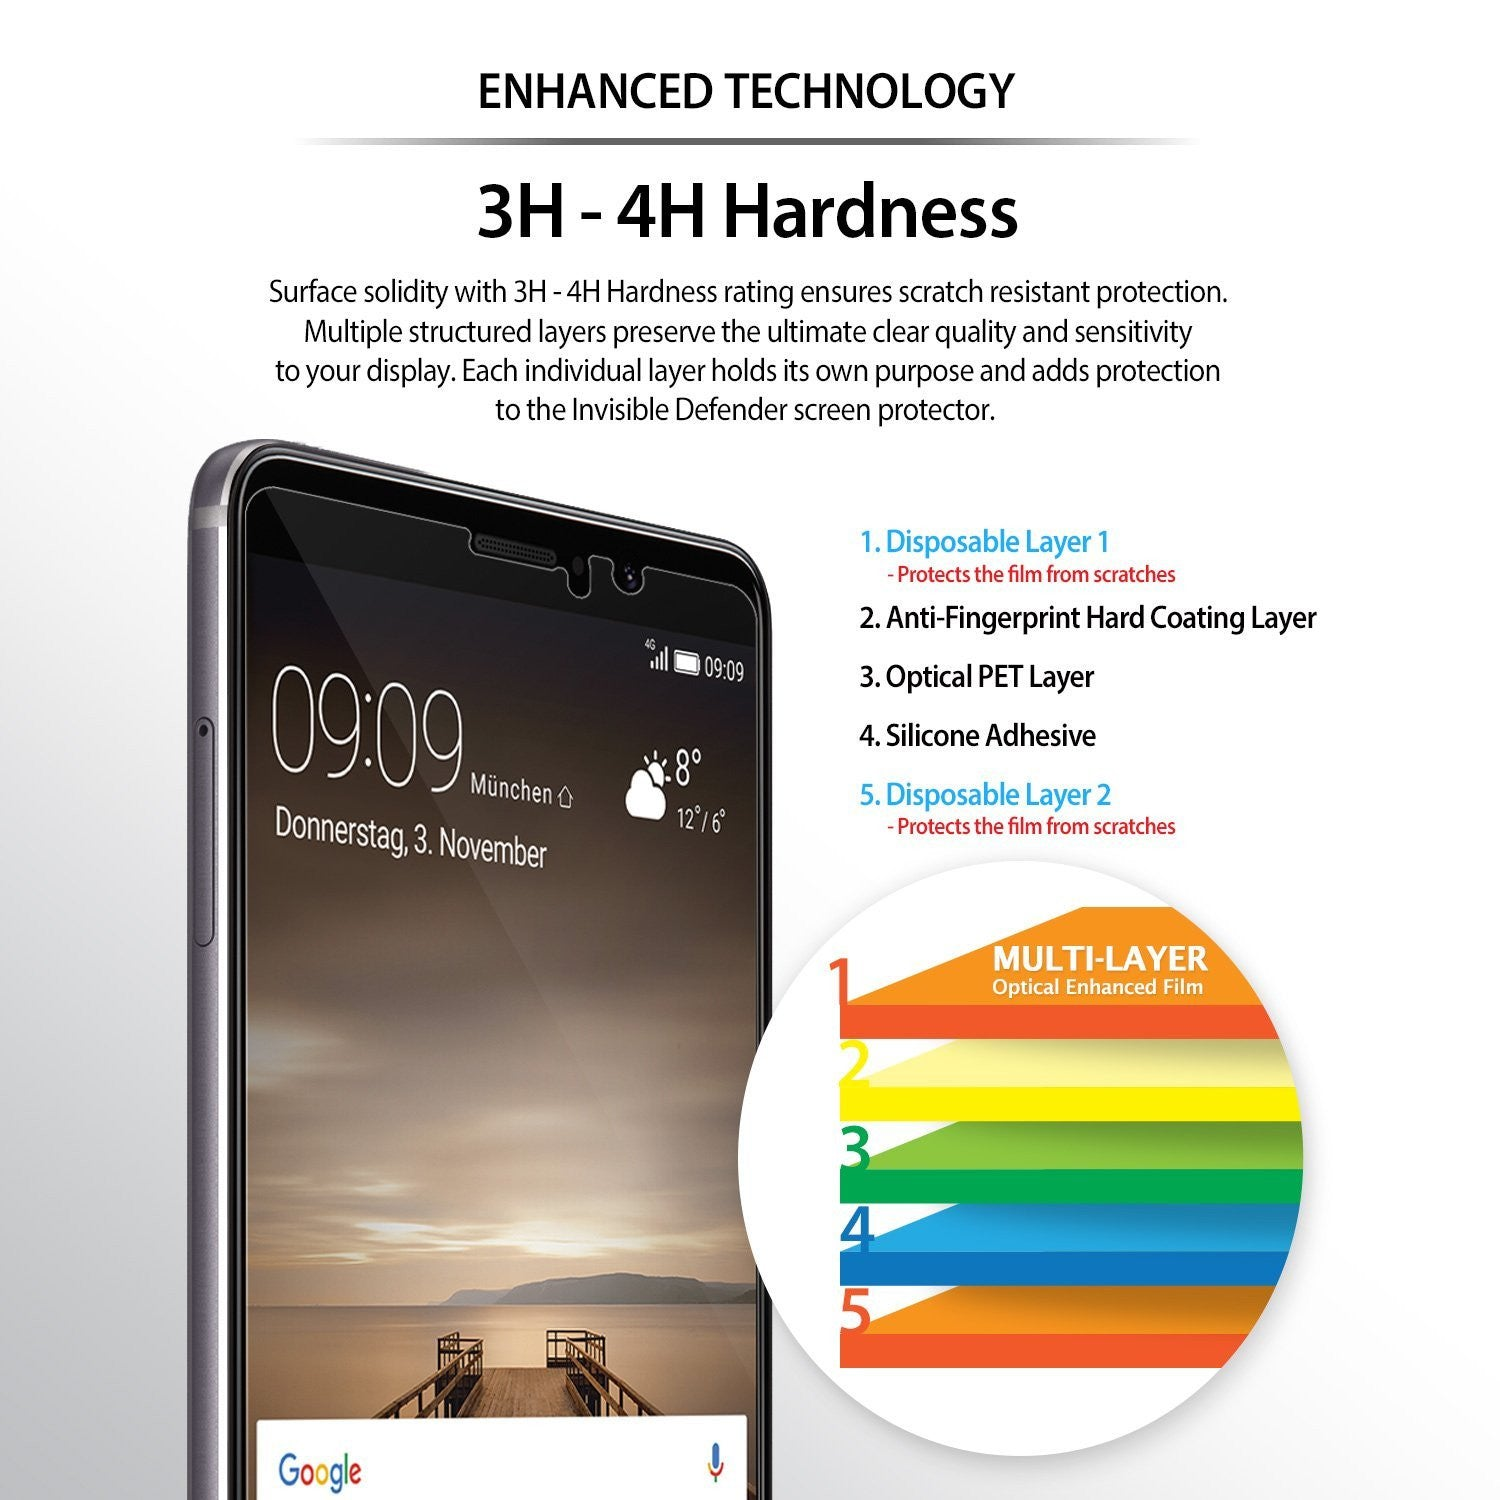 enhanced 3h- 4h hardness